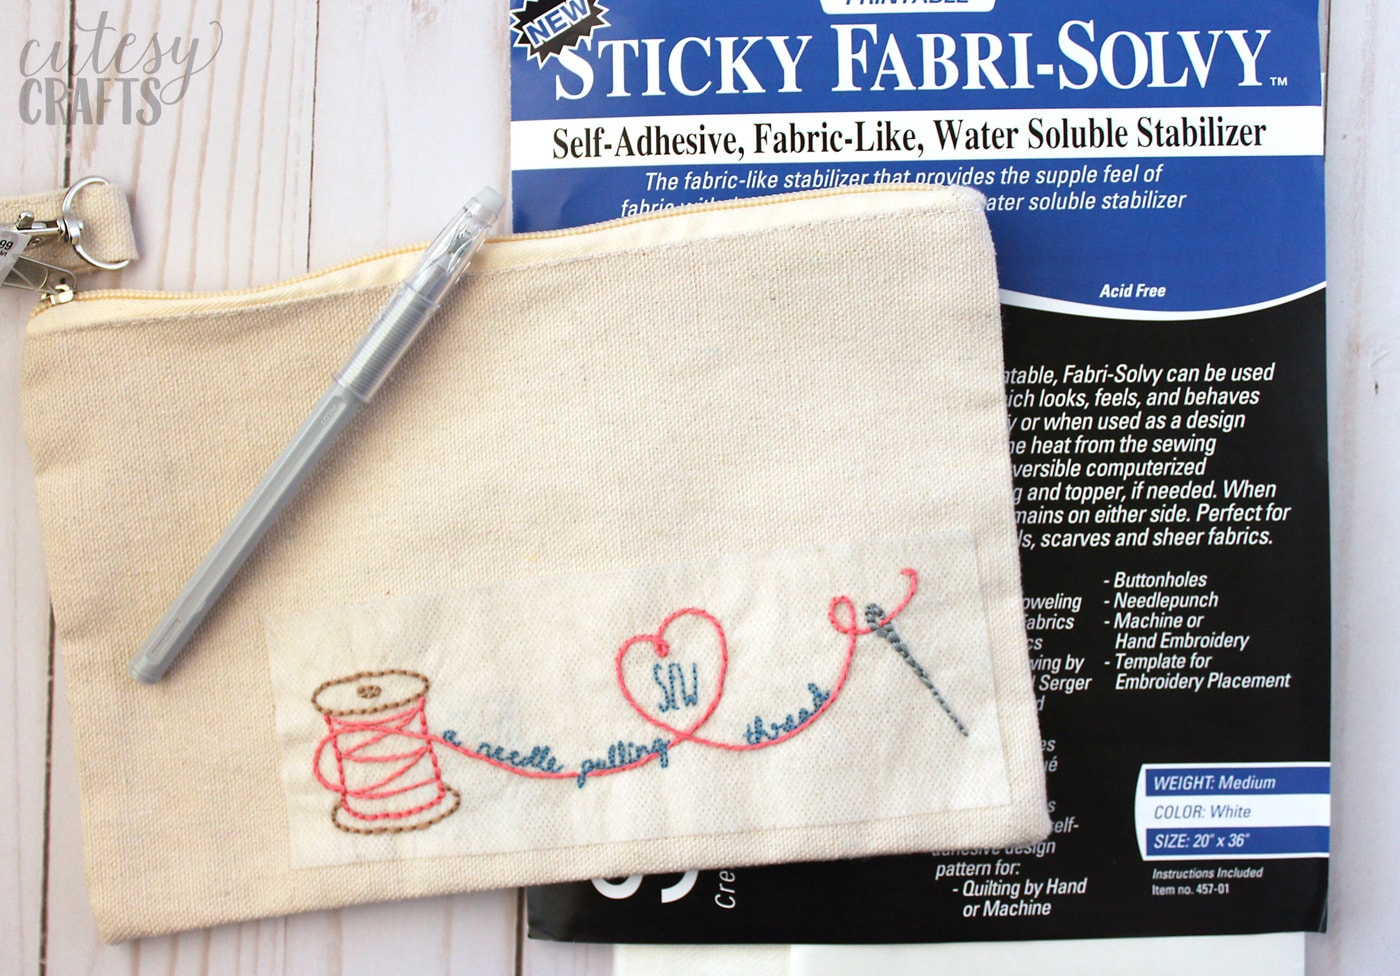 Make Embroidery Pattern Adorable Diy Sew A Needle Pulling Thread Bag Free Hand